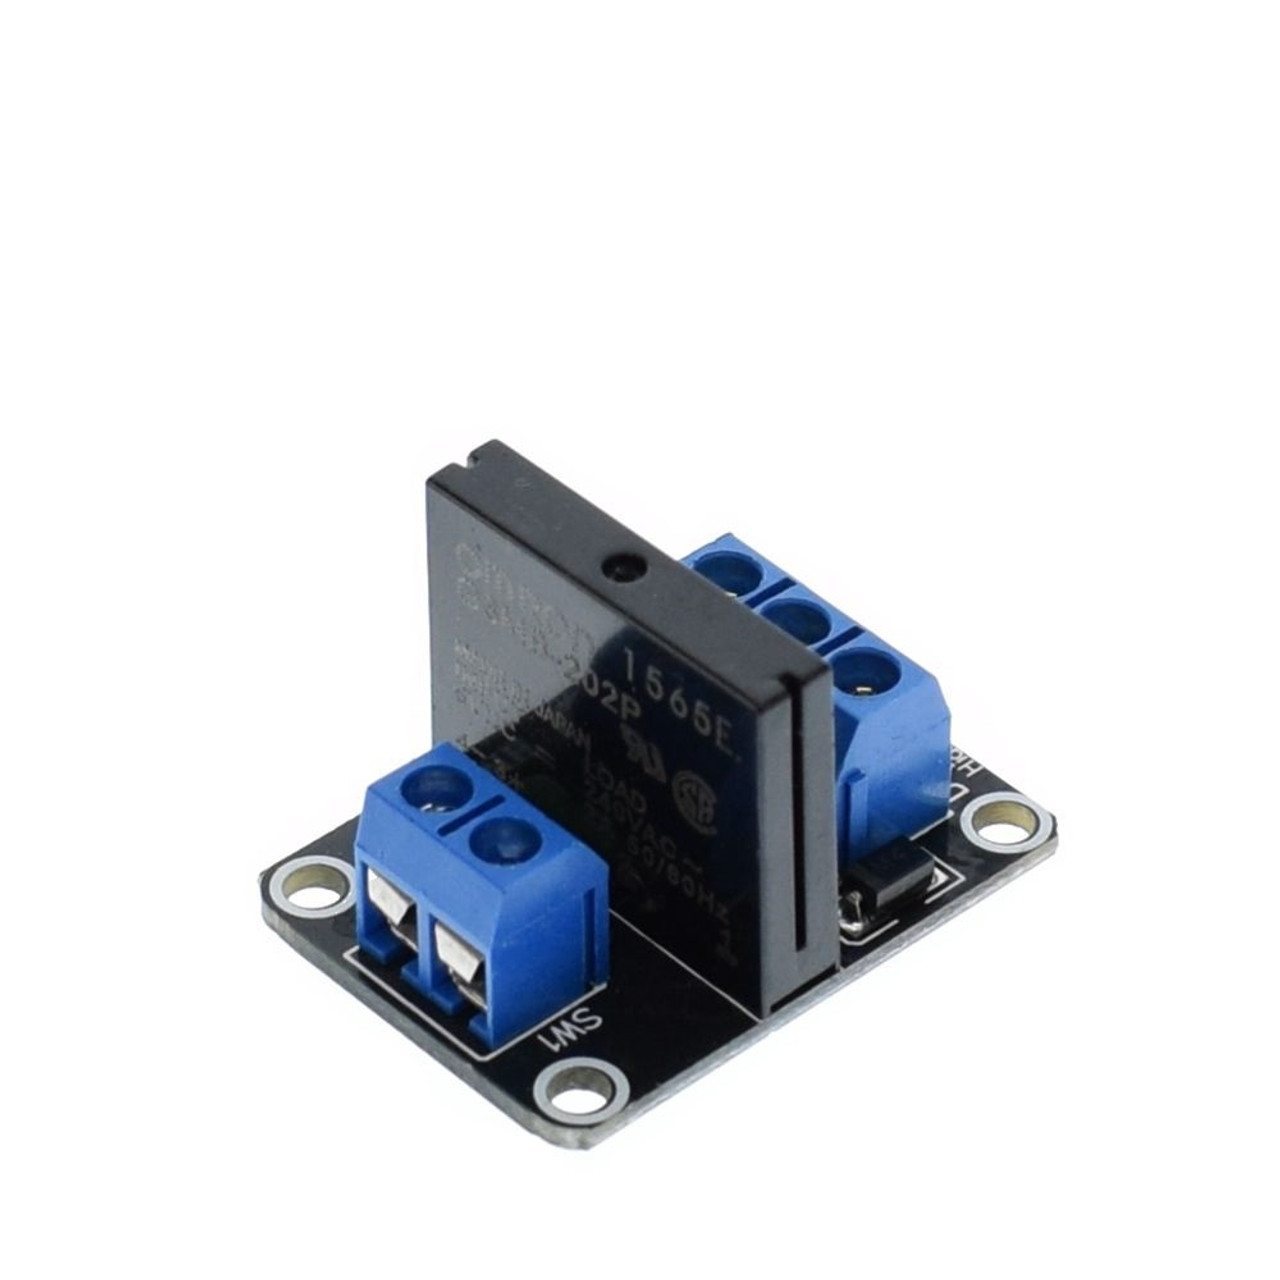 5V 1 Channel High Level Solid State Relay Module 250V 2A For Arduino